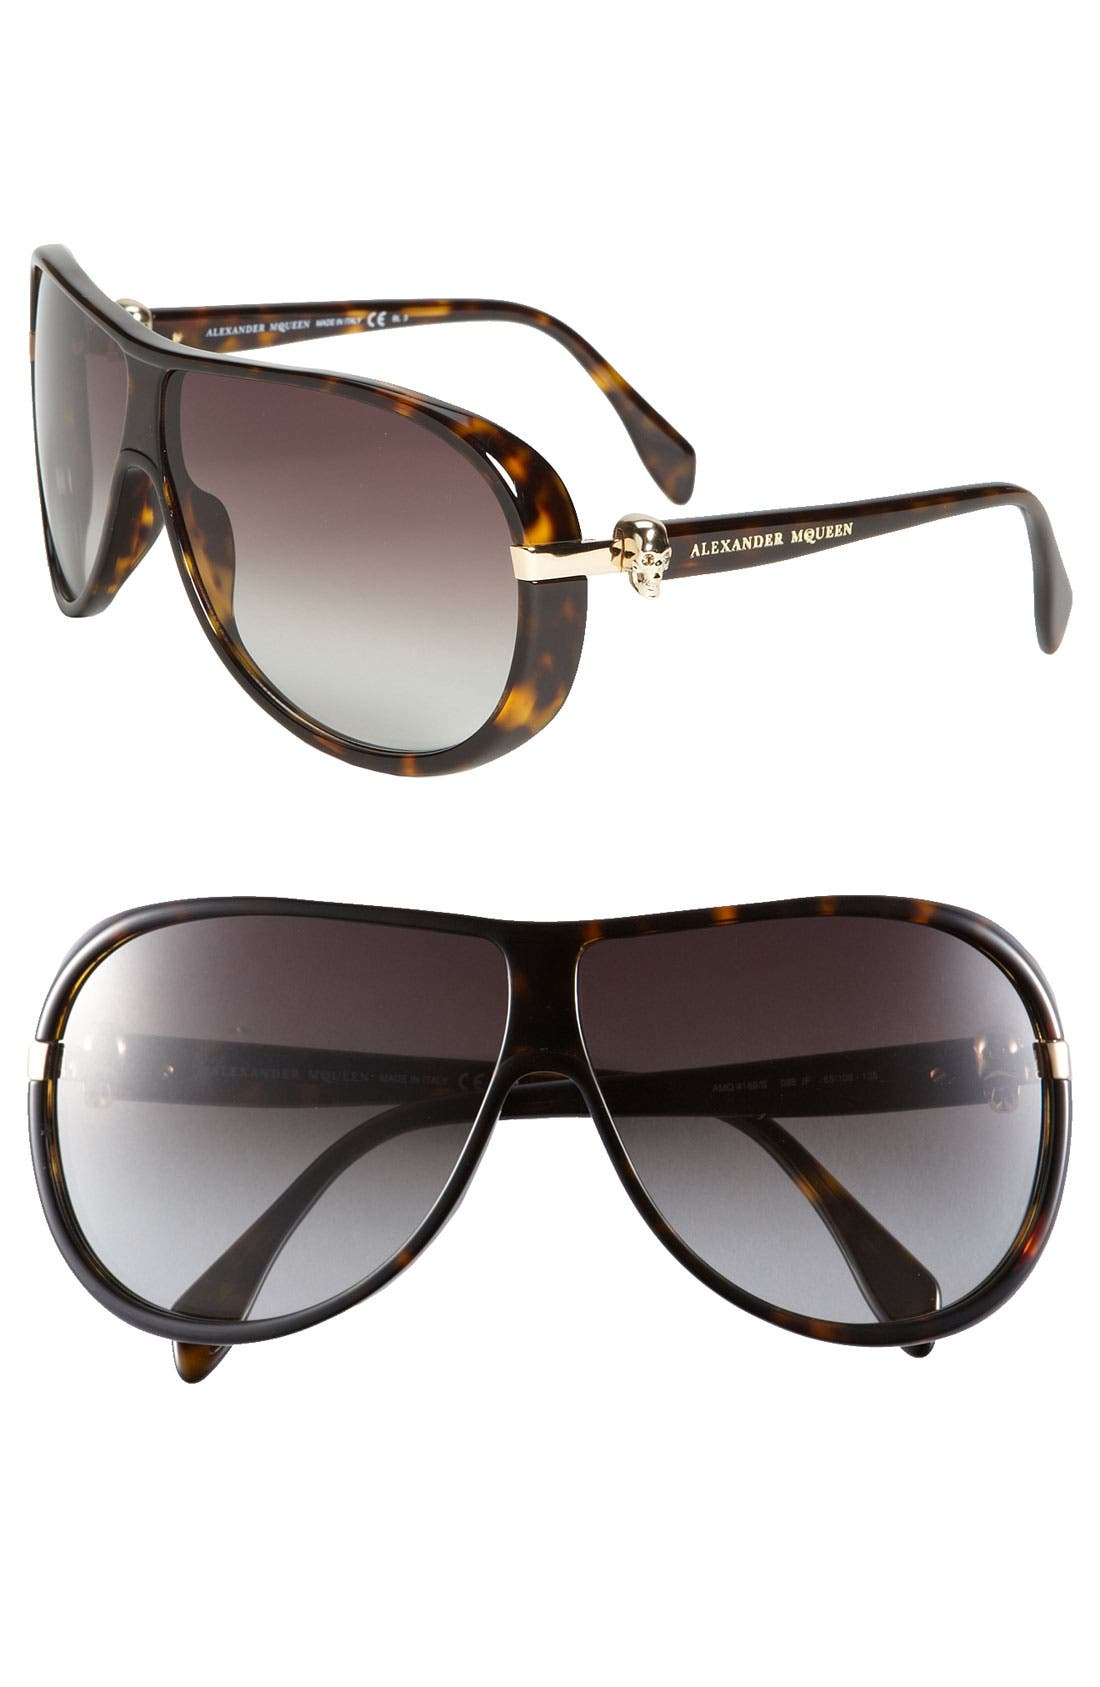 Main Image - Alexander McQueen 65mm Skull Temple Aviator Sunglasses